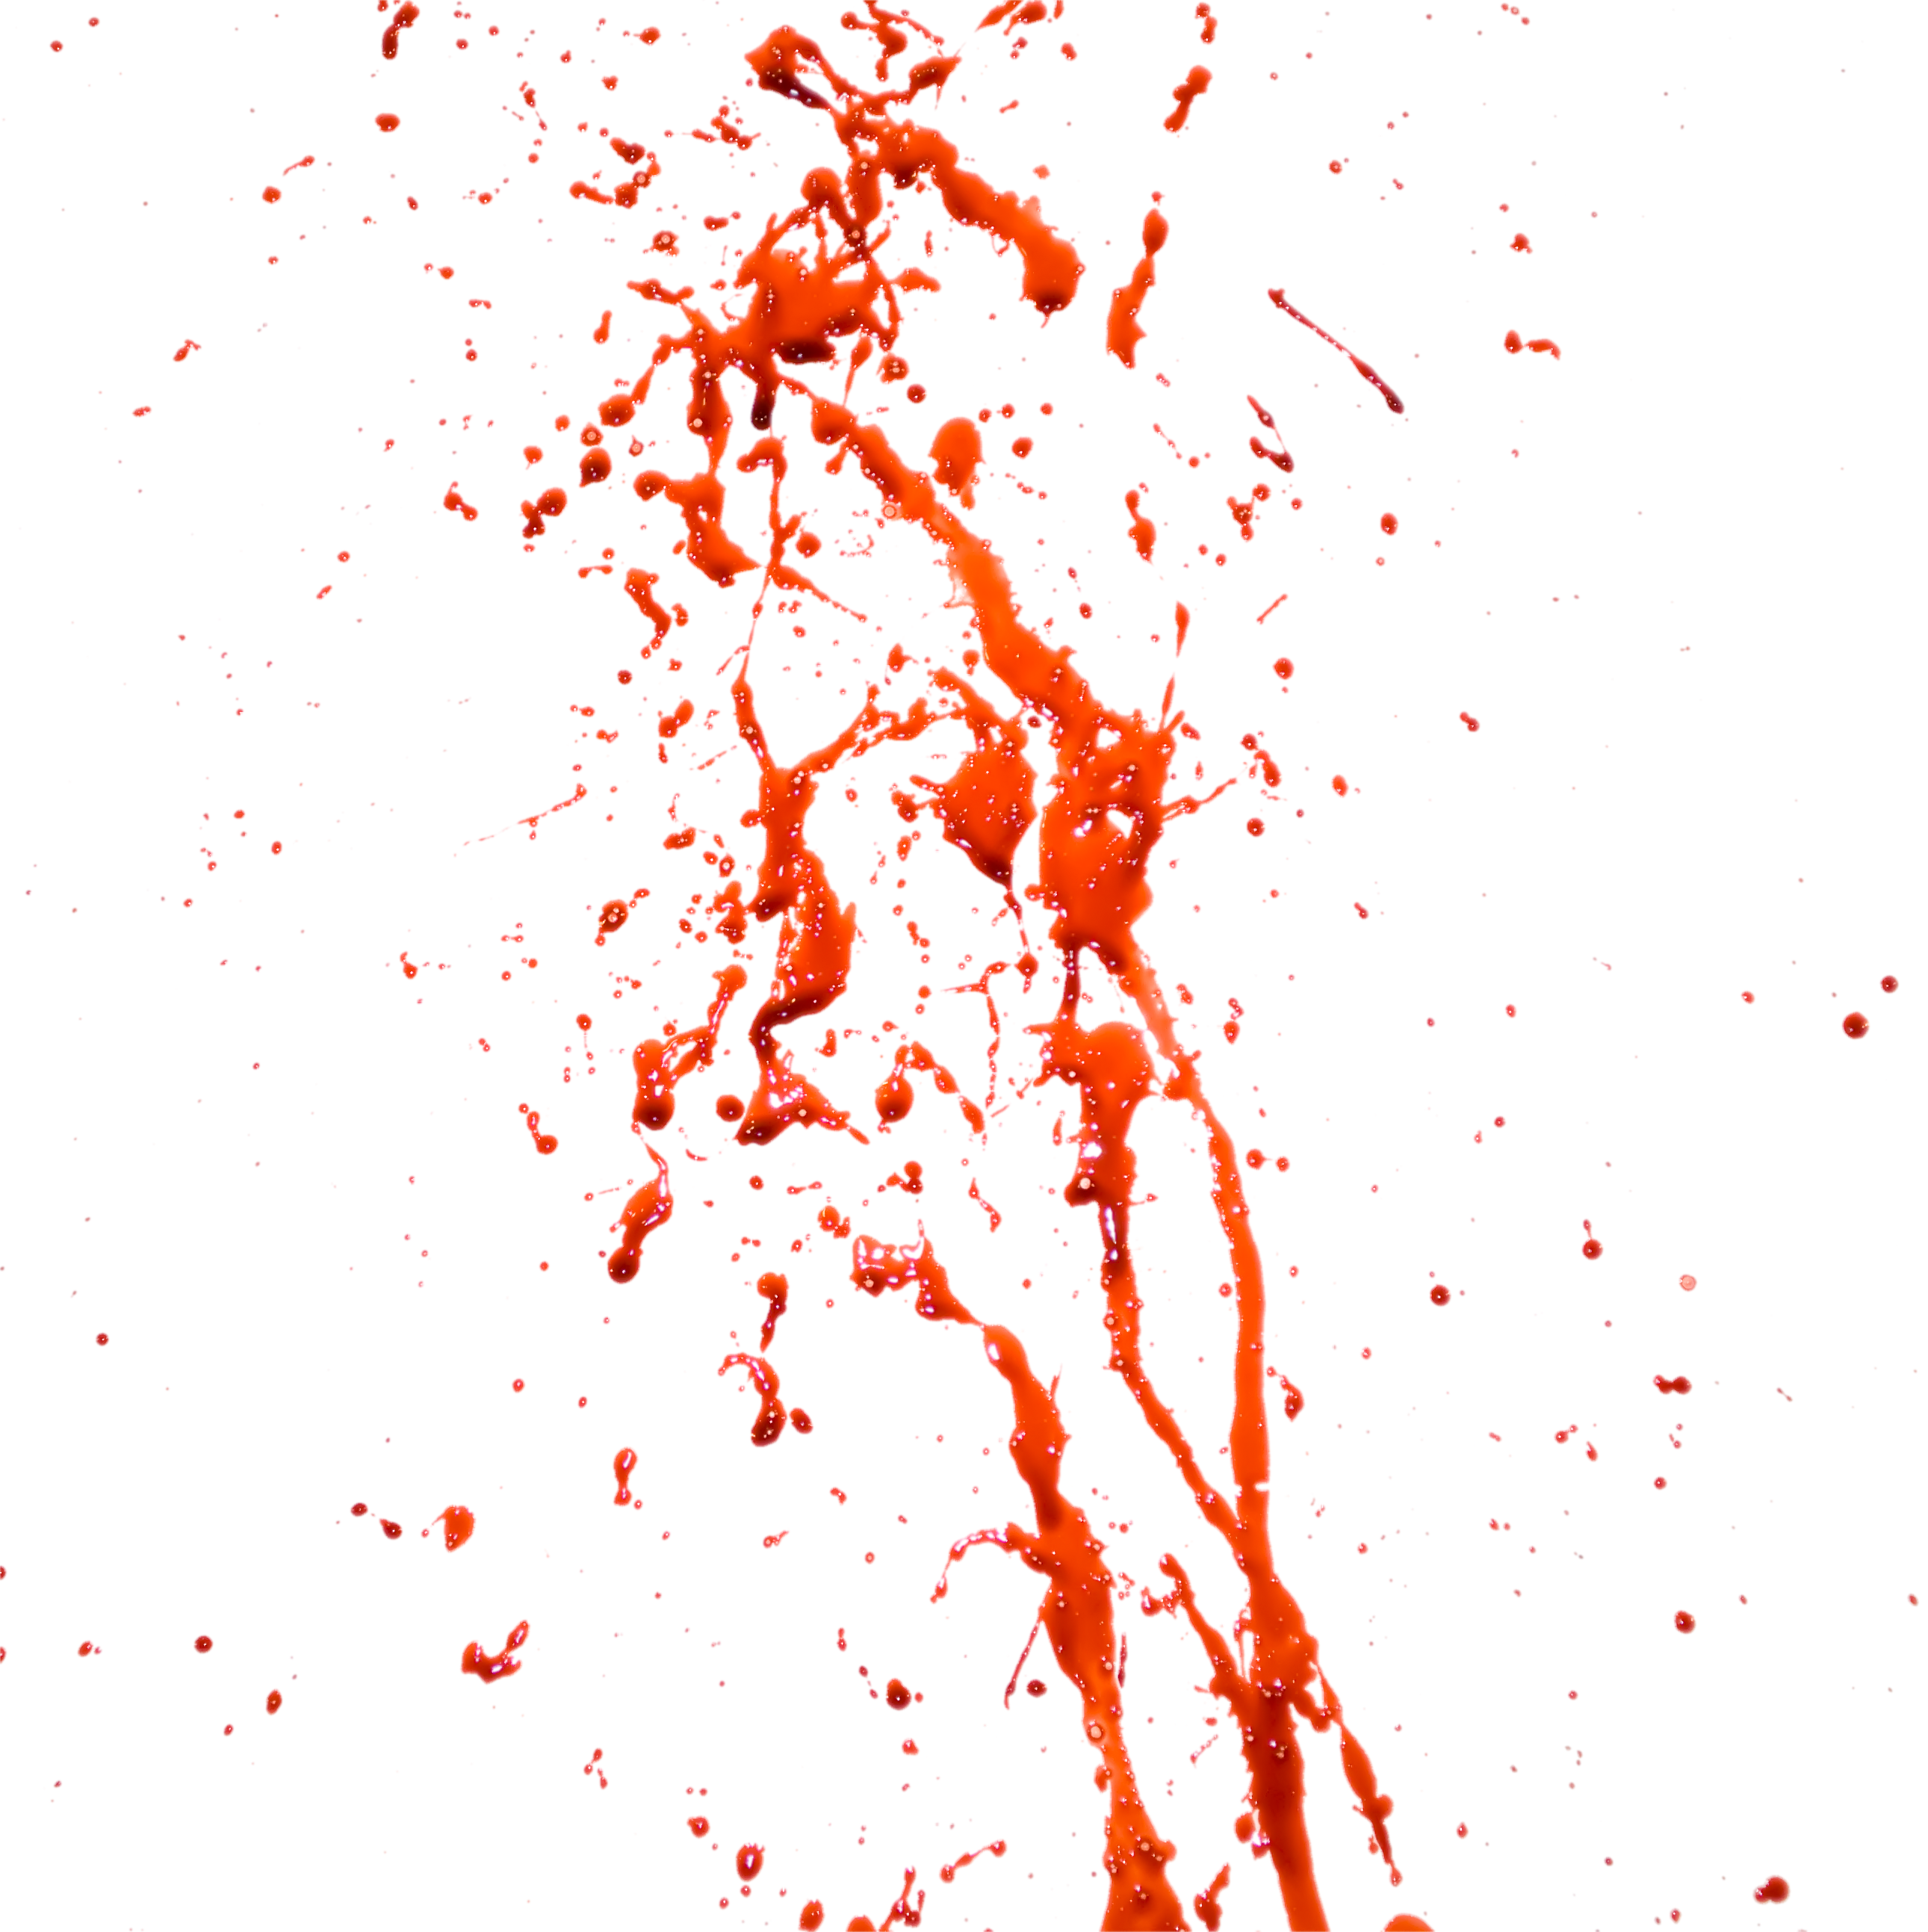 Blood splash png. Images free download splashes